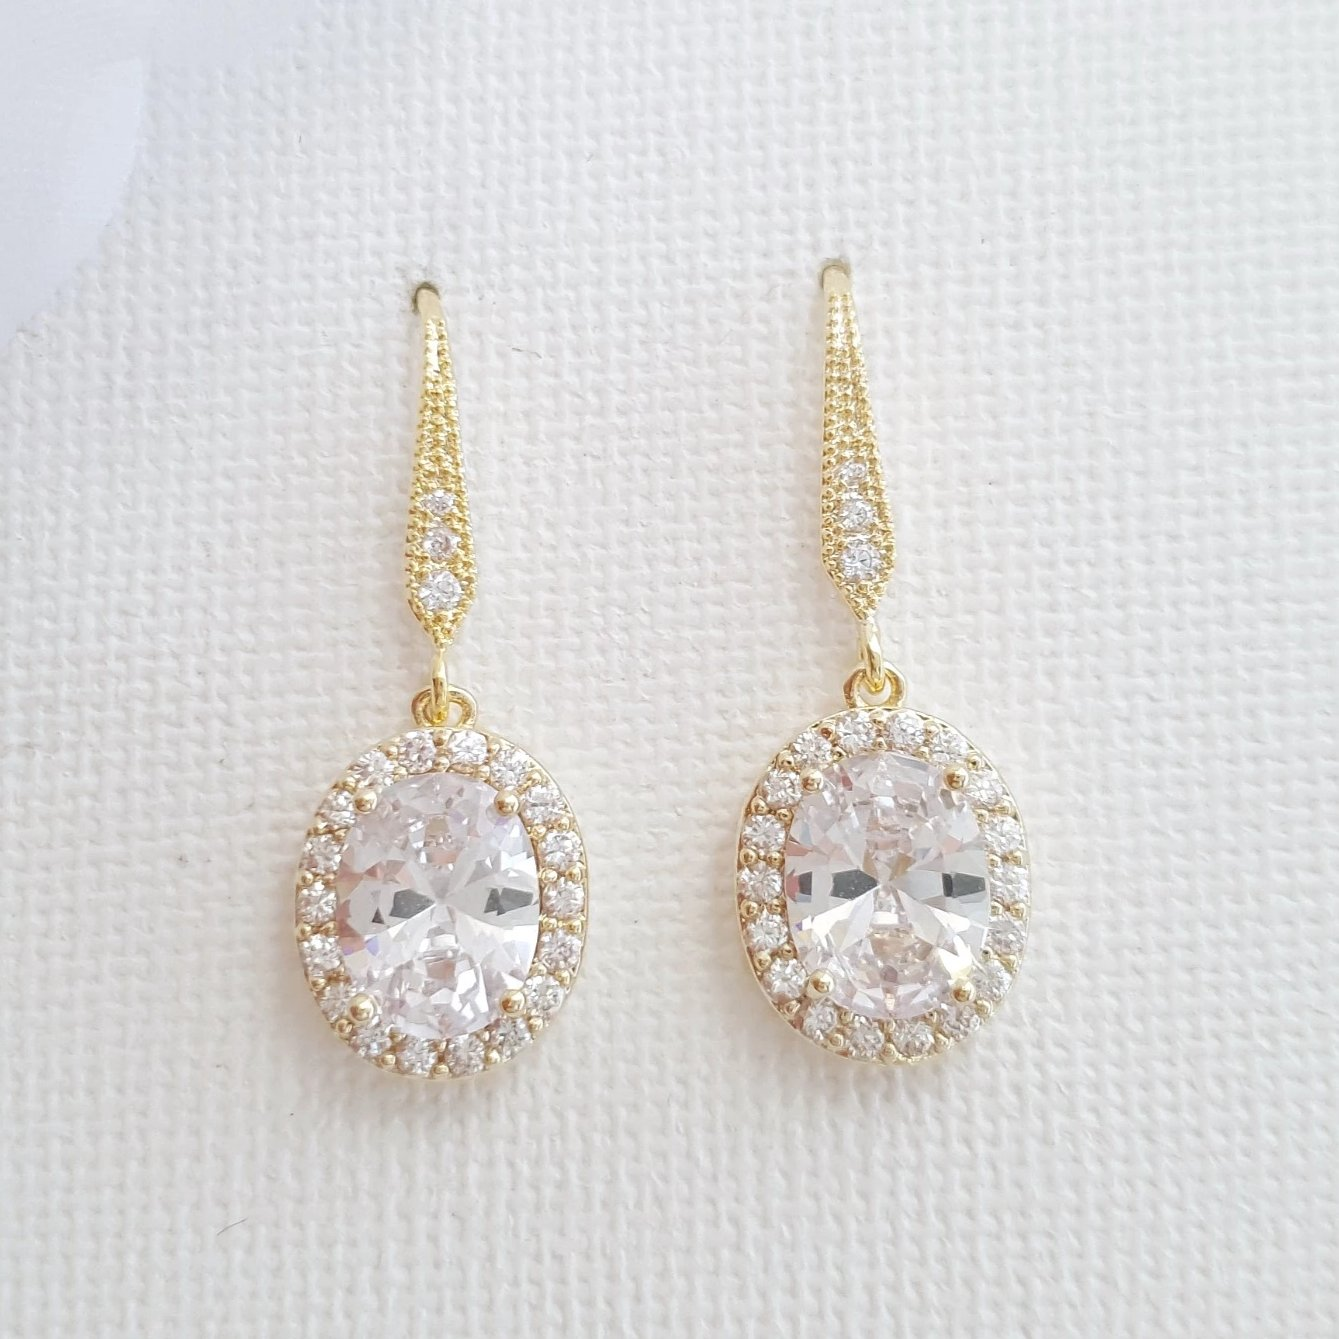 Small Gold Dangle Earrings With Oval CZ Drops-Emily